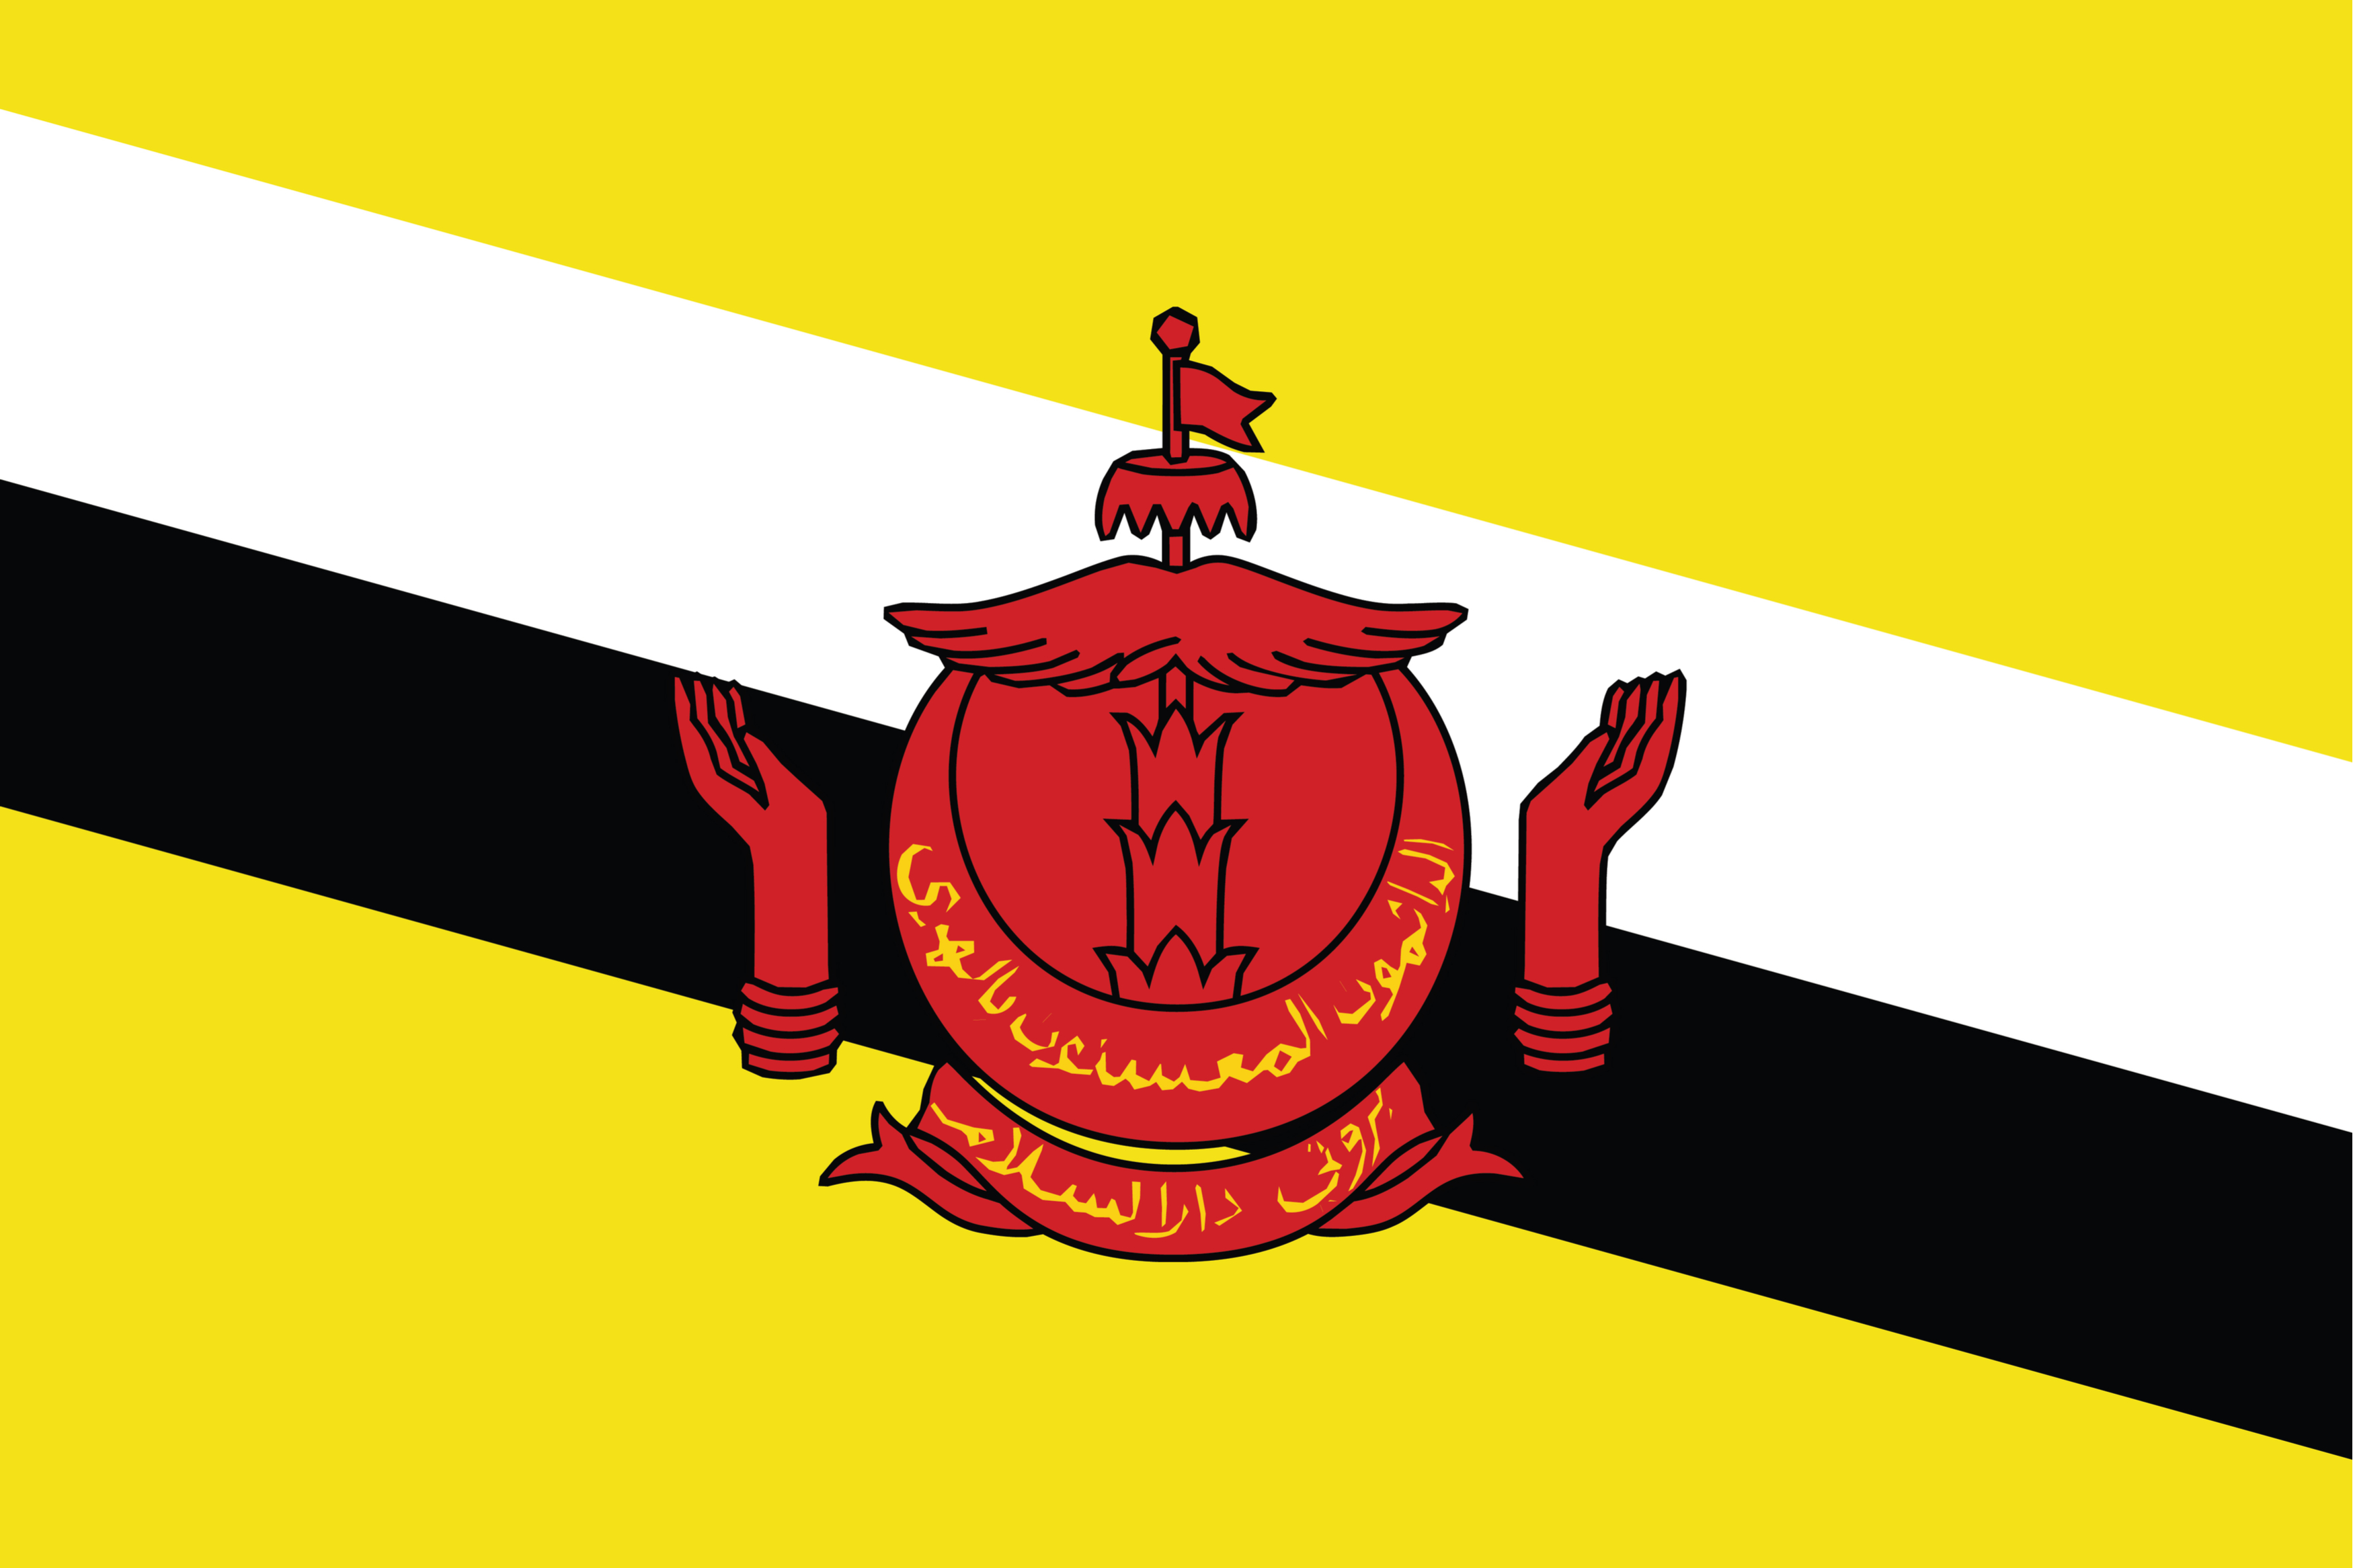 The National Flag of Brunei Darussalam features a yellow field with two diagonal black and white stripes.